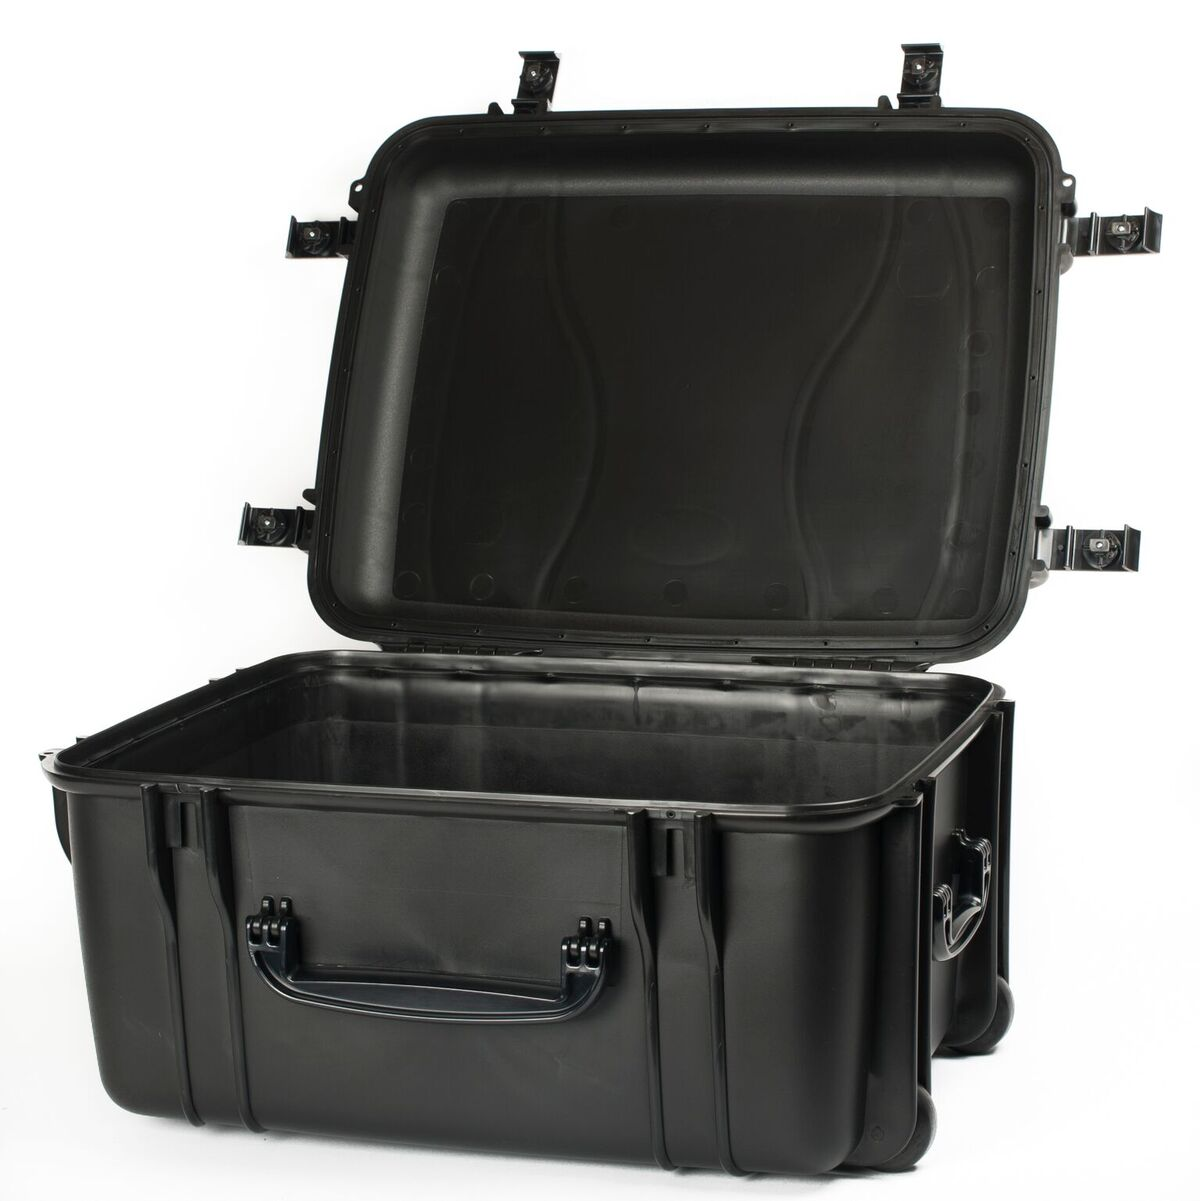 SEAHORSE PROTECTIVE EQUIPMENT CASES      SE1220,BK